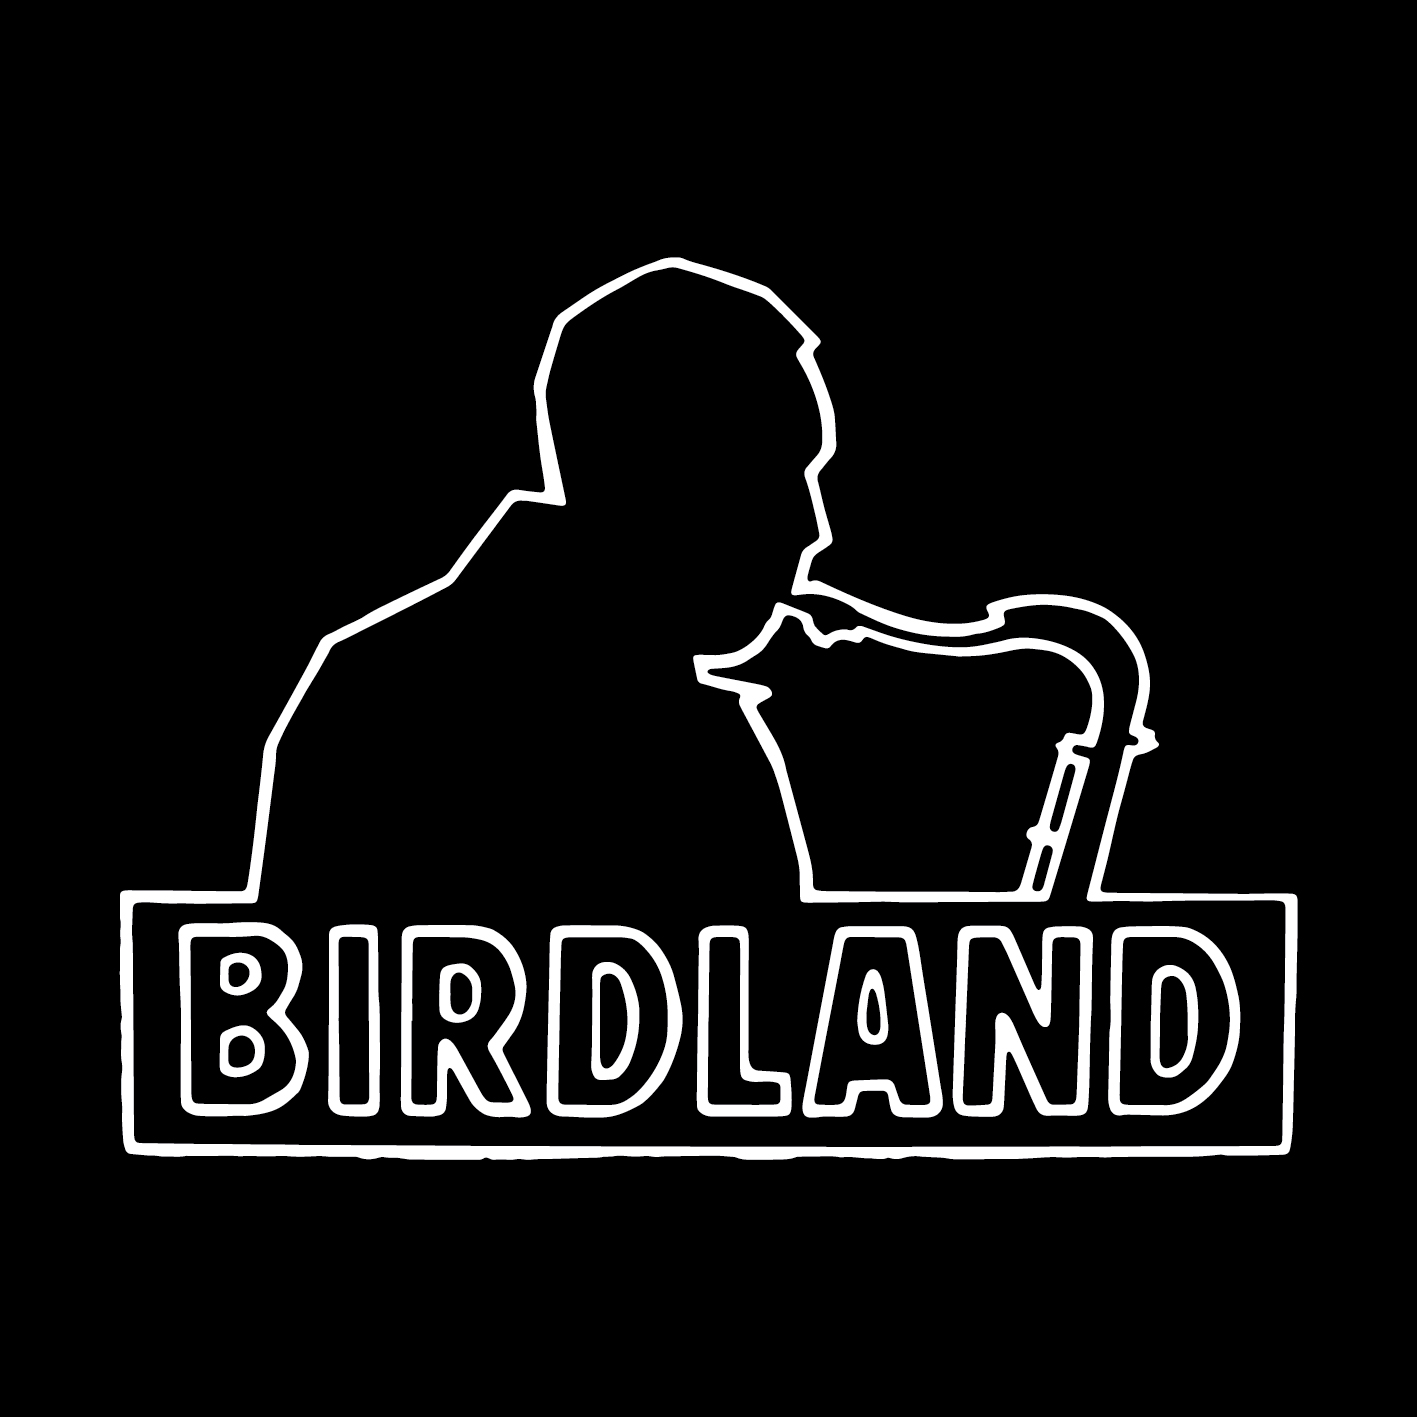 Image of Birdland